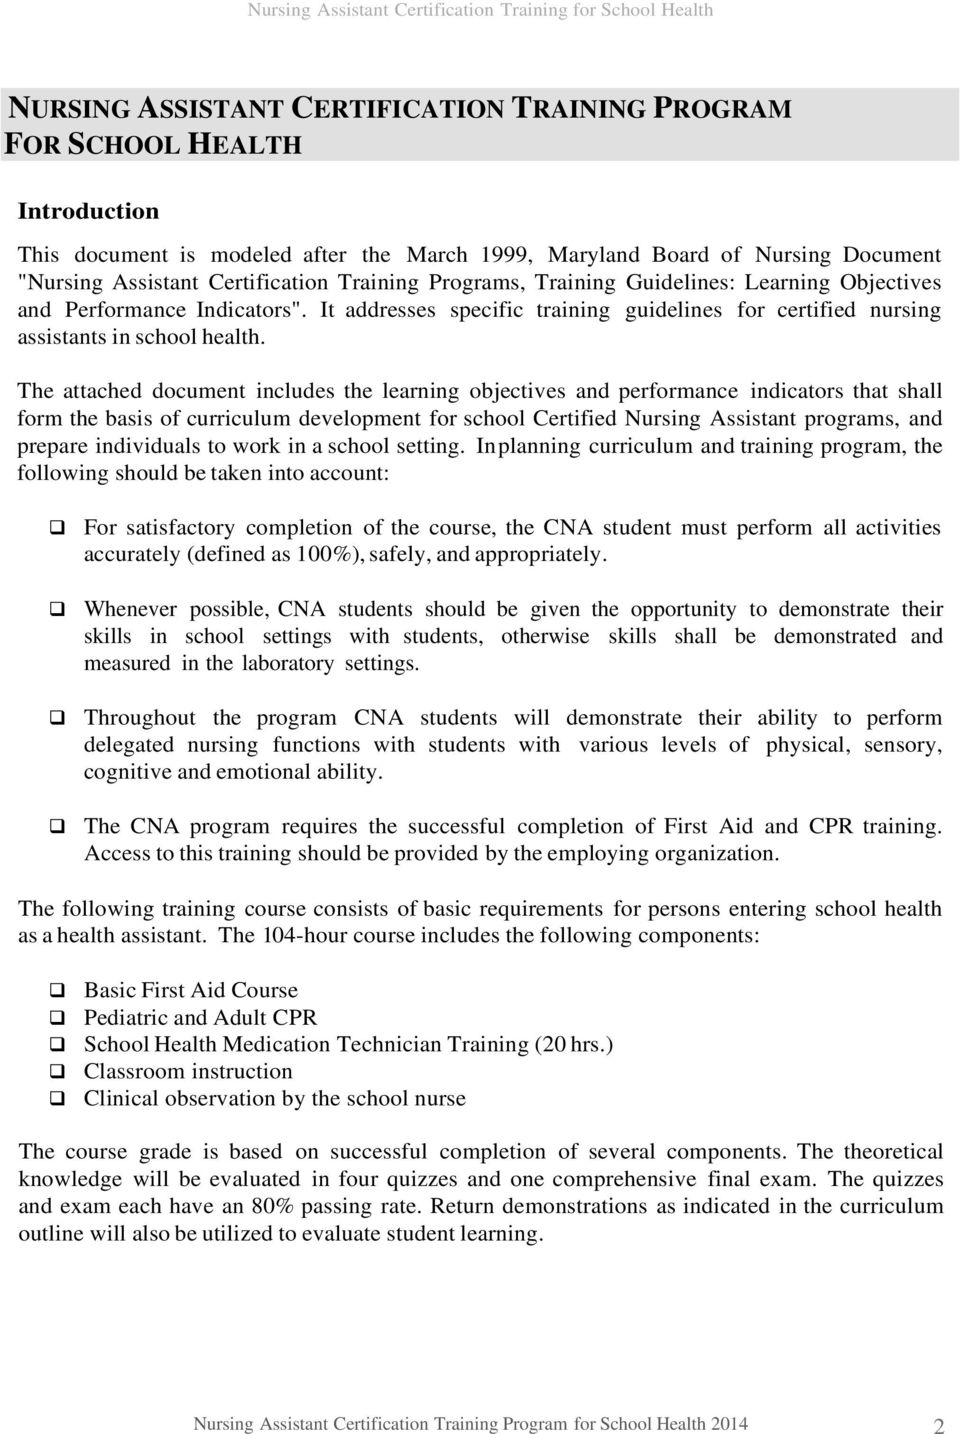 The attached document includes the learning objectives and performance indicators that shall form the basis of curriculum development for school Certified Nursing Assistant programs, and prepare